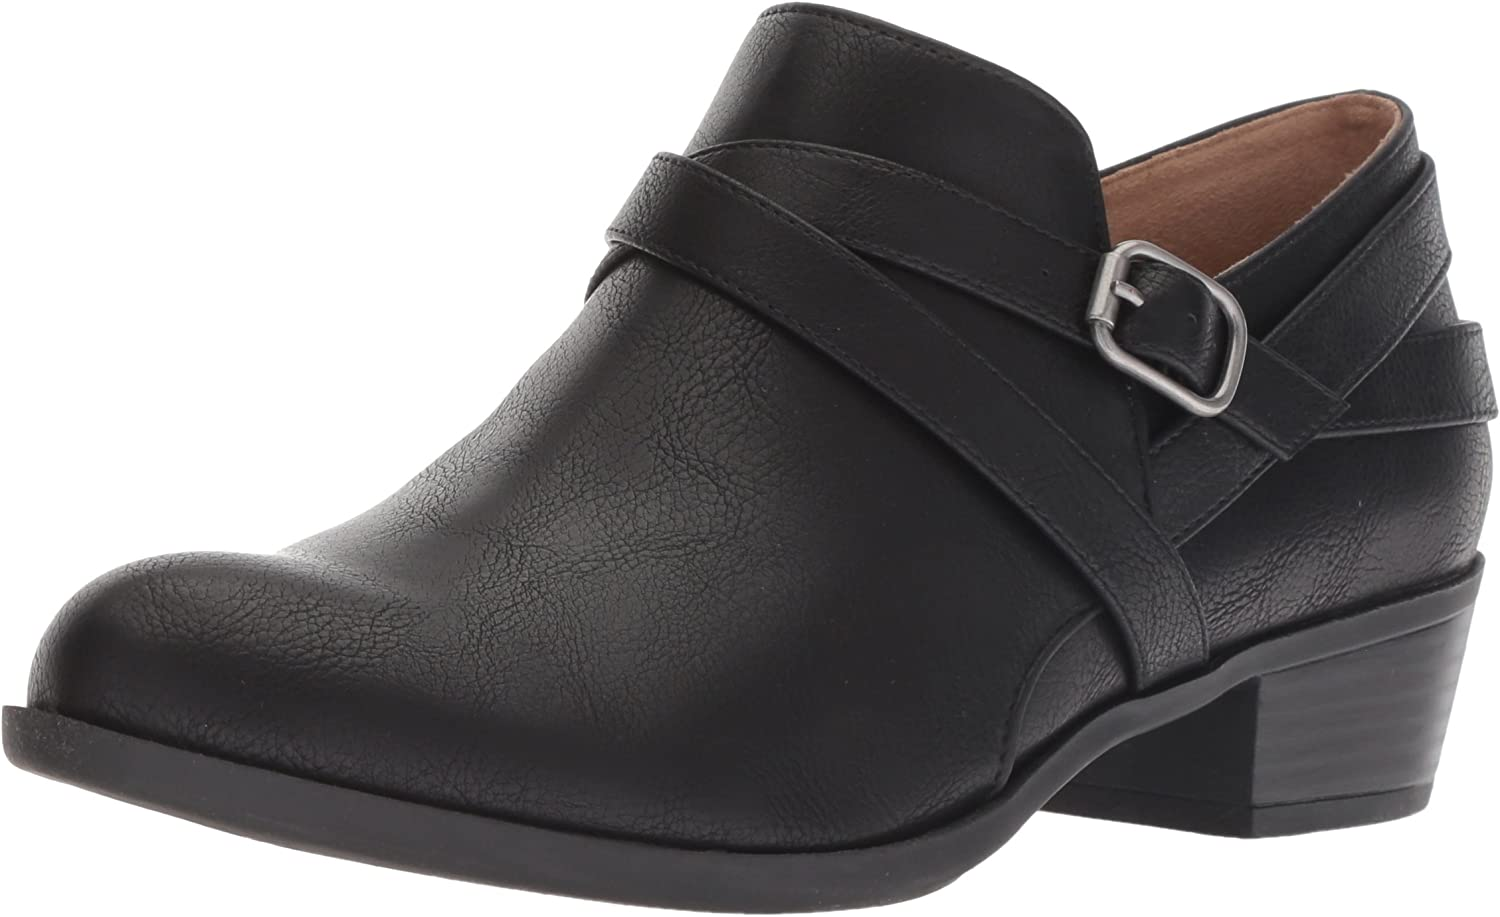 LifeStride Women's Adley Ankle Boot